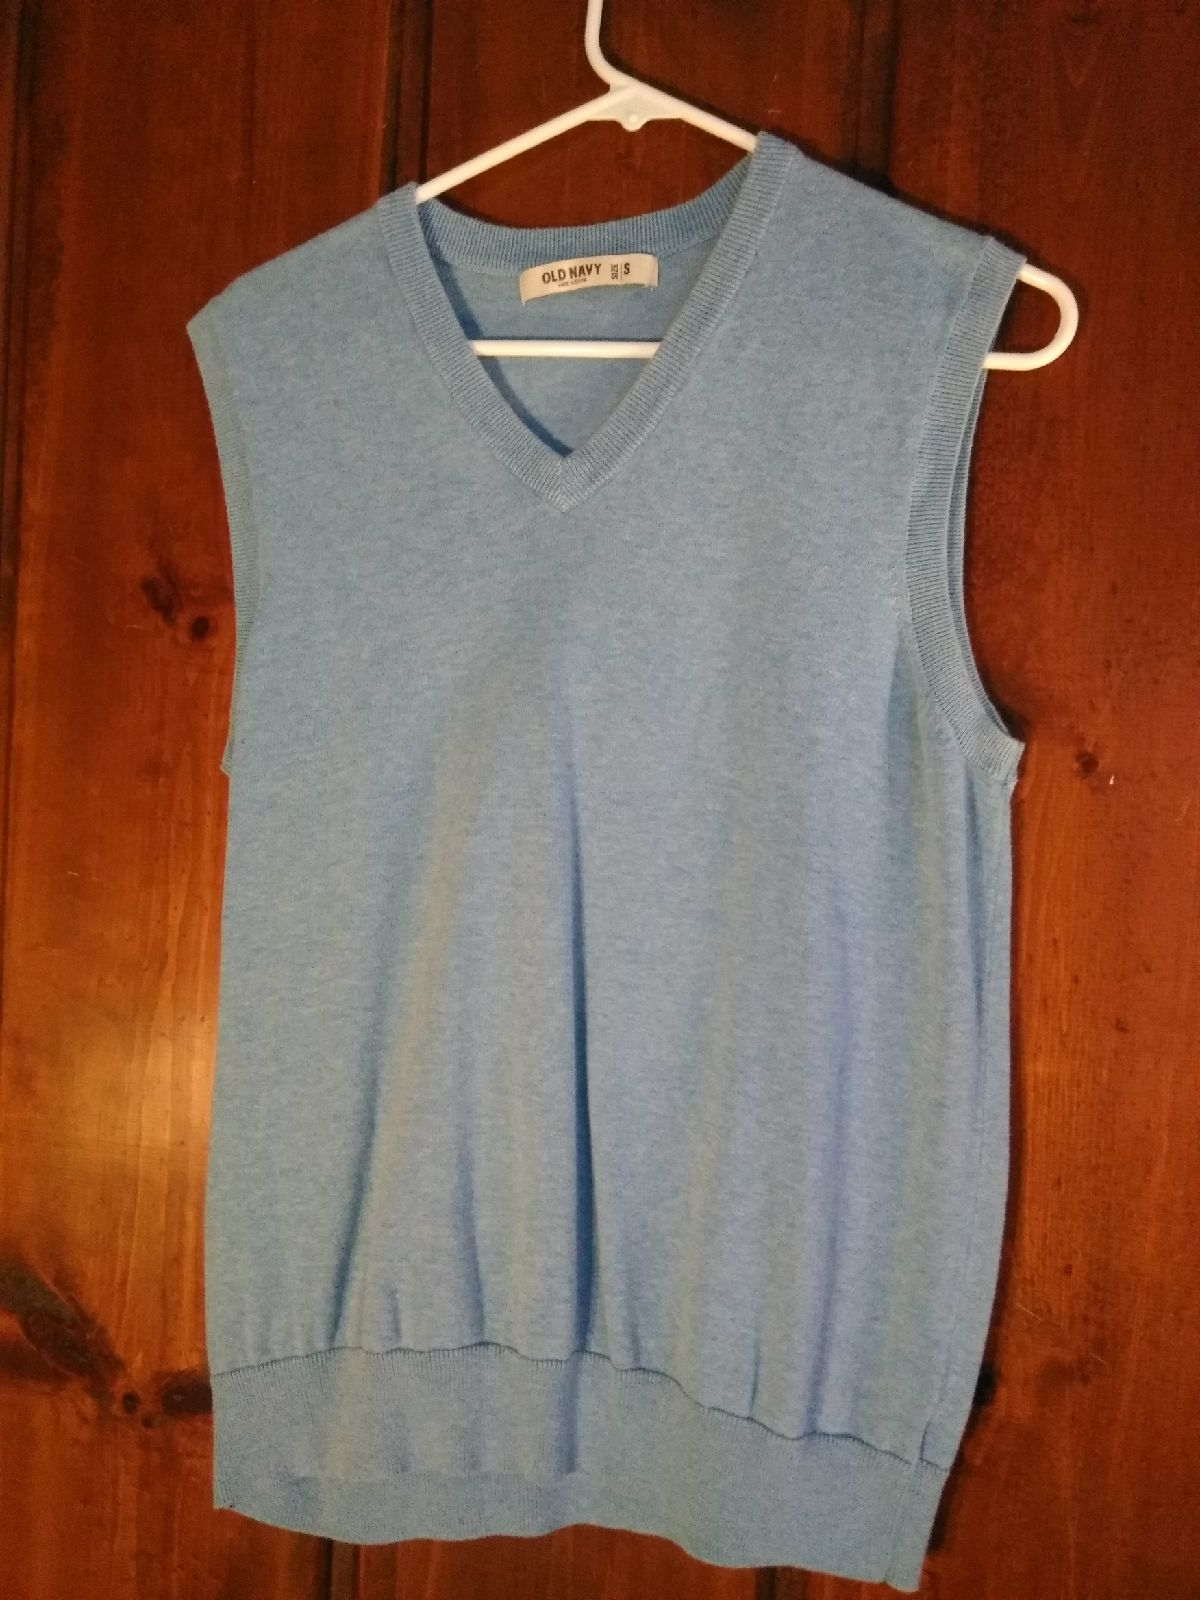 Old Navy sweater vest - Mercari: BUY & SELL THINGS YOU LOVE